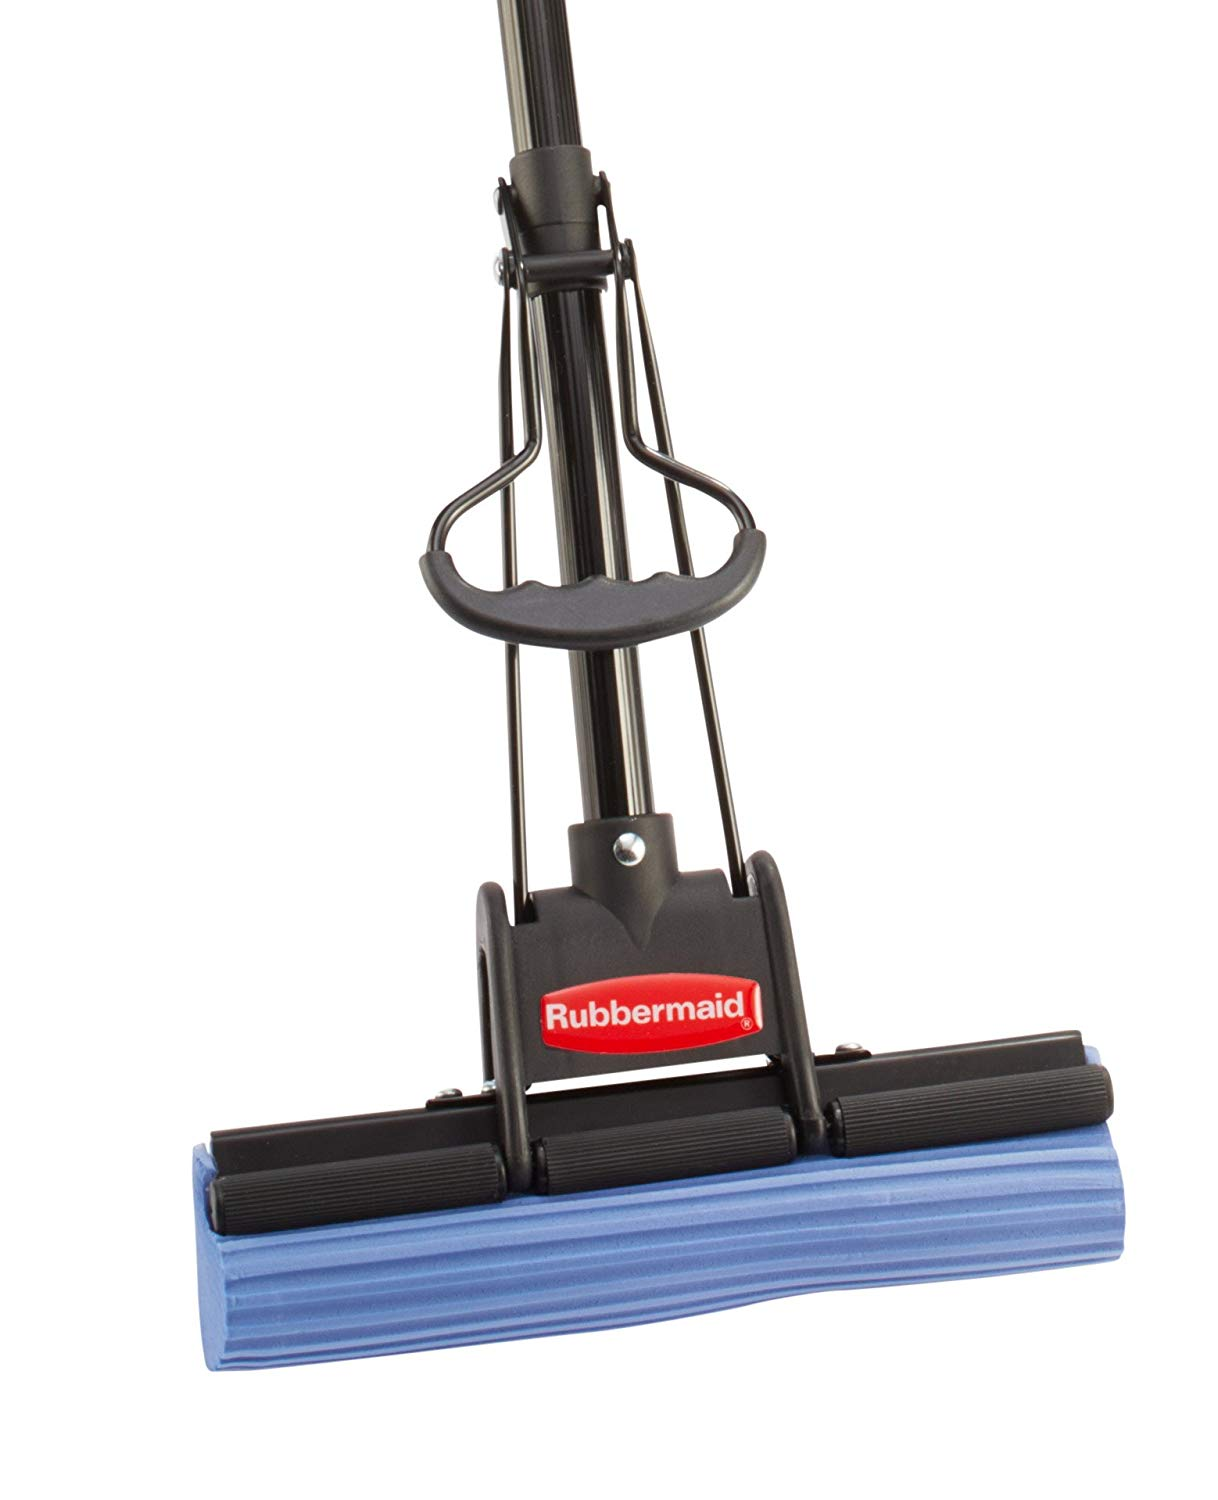 Rubbermaid-Commercial-PVA-Sponge-Mop-with-Handle-FGG78004